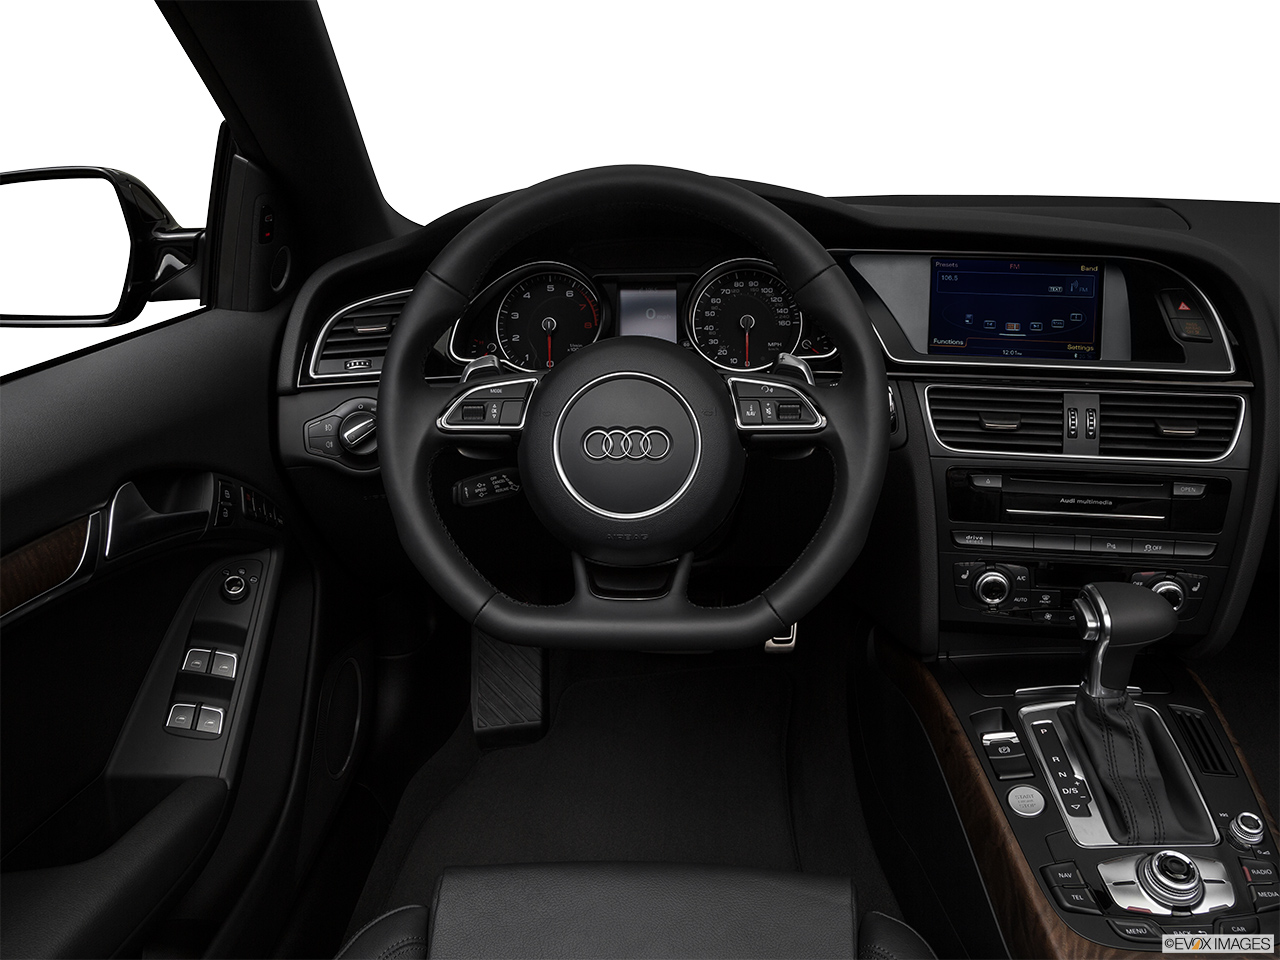 2017 Audi A5 Sport Cabriolet 2.0 TFSI Steering wheel/Center Console.